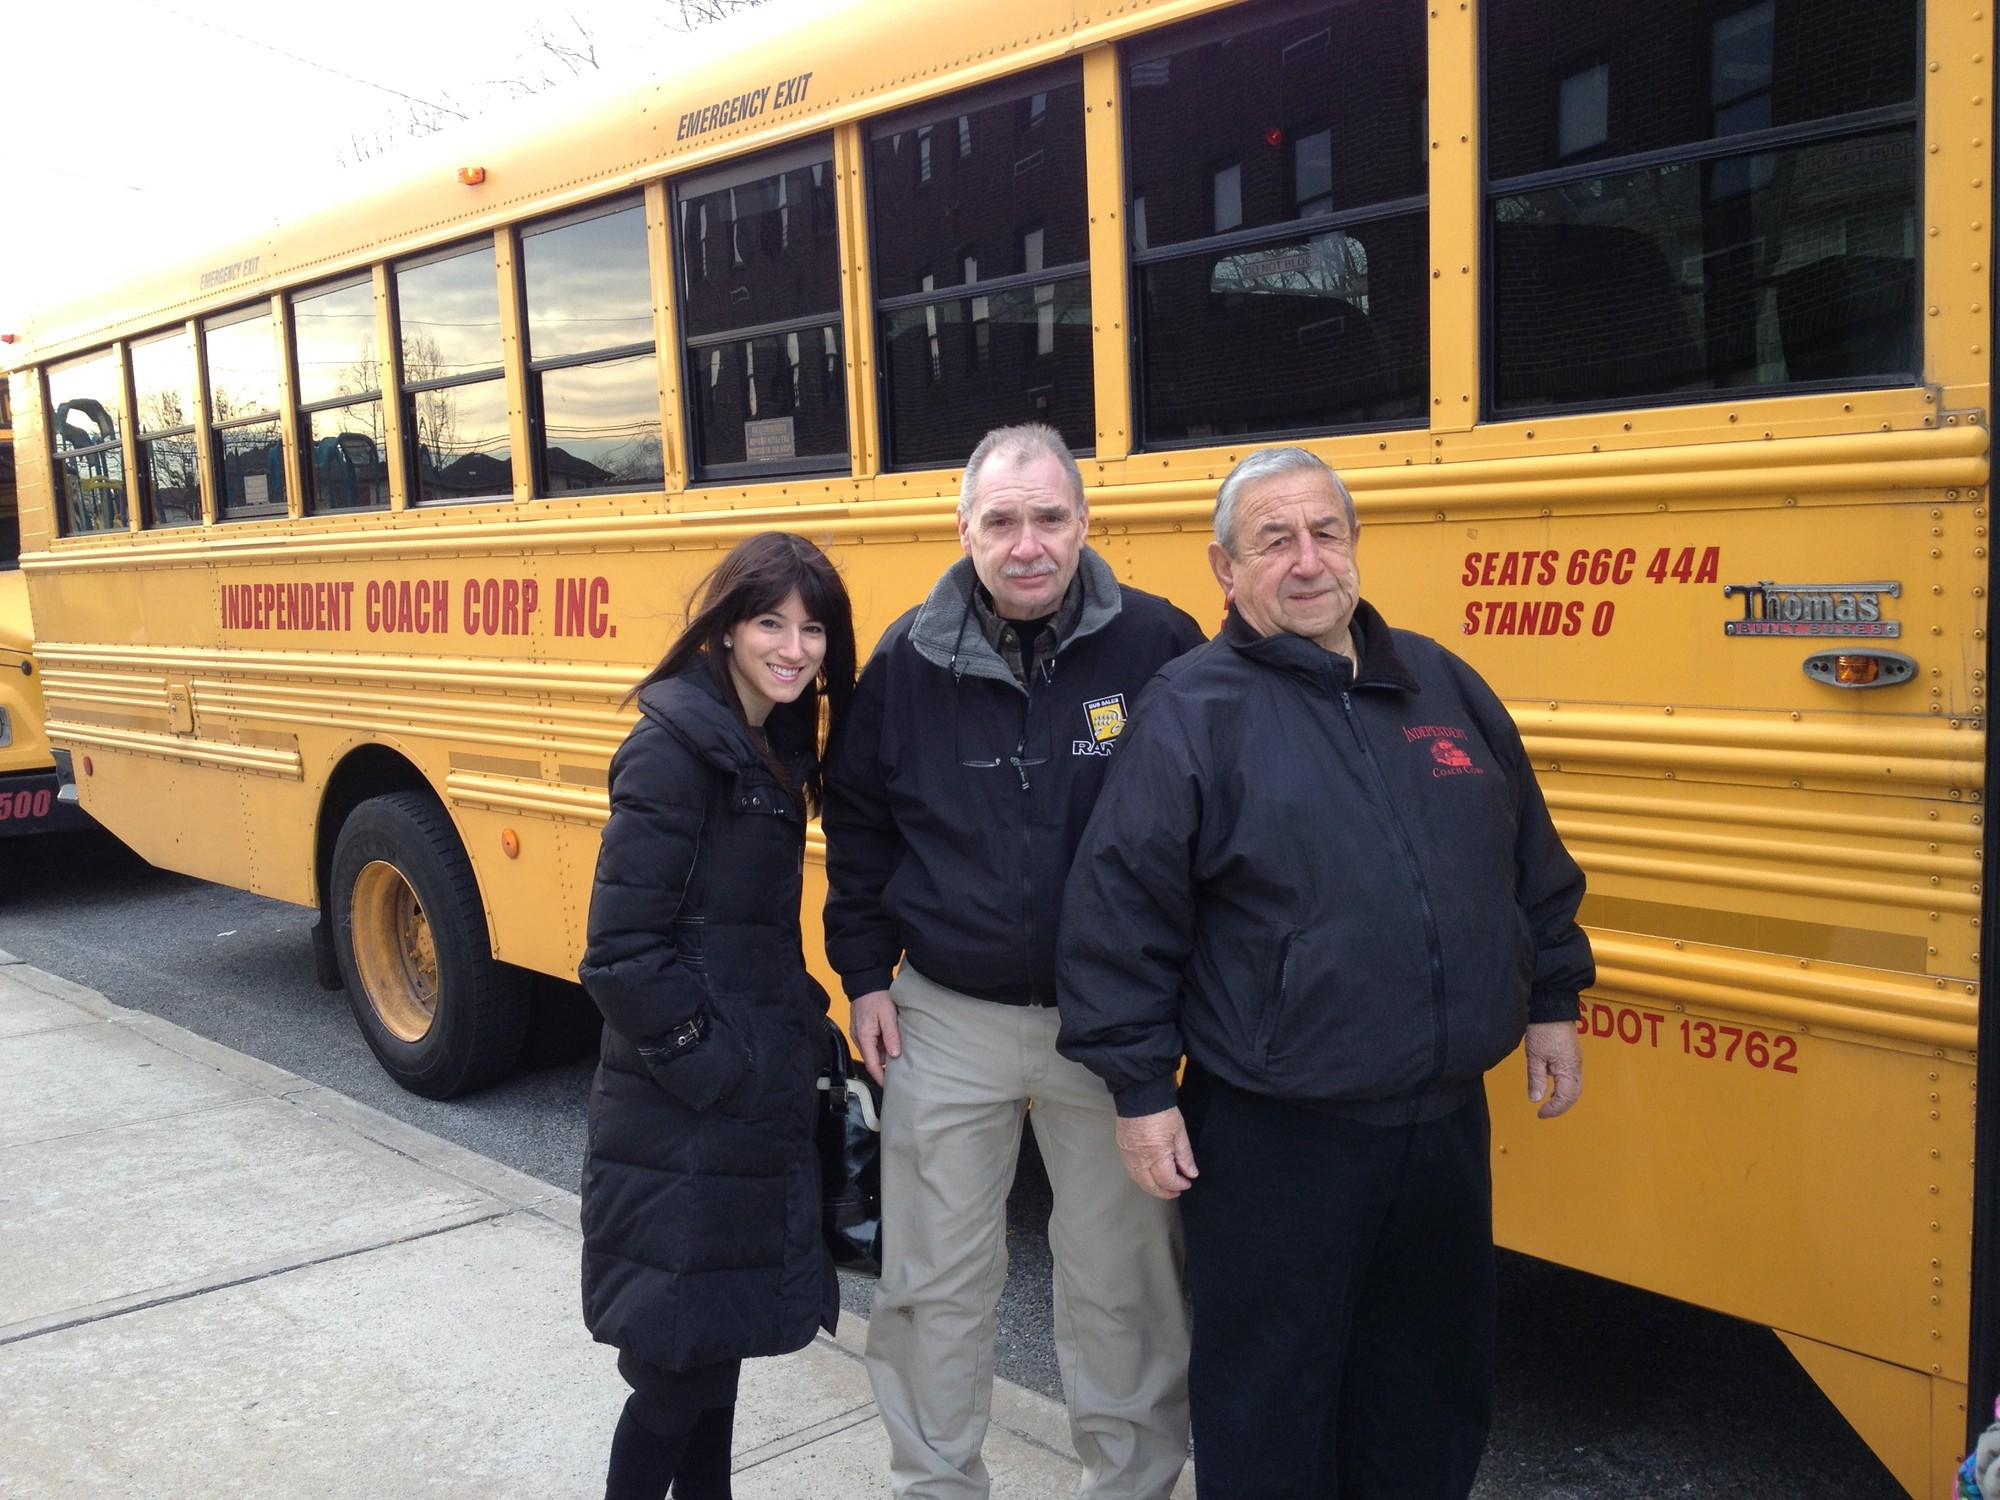 Lawrence School District added 14 buses to alleviate commuting problems for the private-school students it is responsible for transporting. From left Sara Weiss, the district's private-school transportation liaison, and Michael and Nick Fabrizio from Independent Coach.